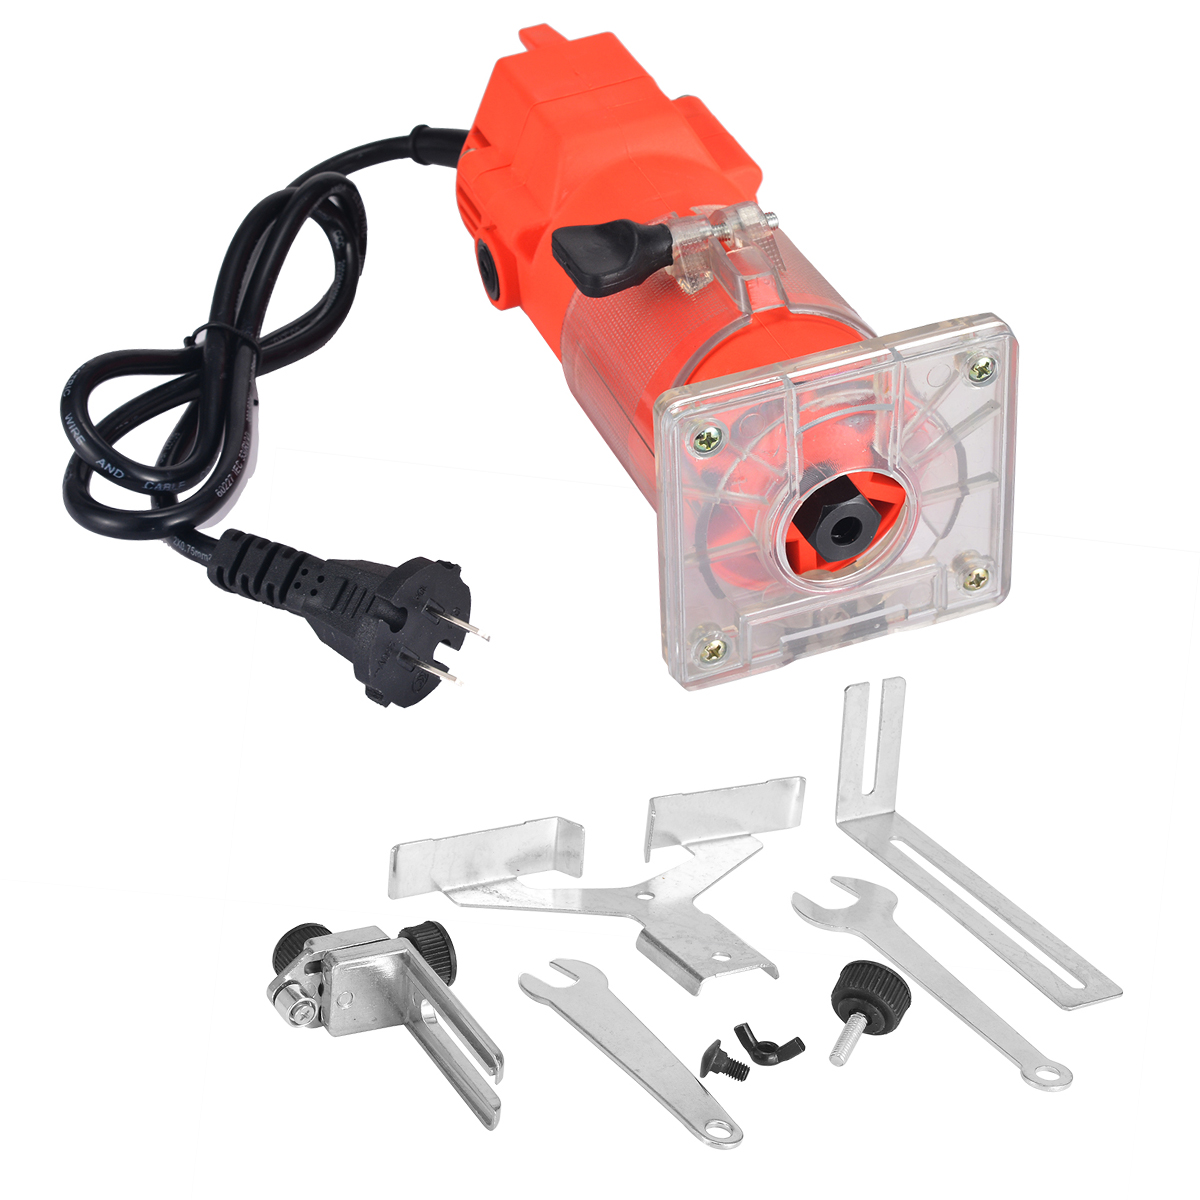 220V 300W Trim Router Edge Woodworking Clean Cut 3000rpm Electric Woodworking Toos Power Tool Set Mayitr